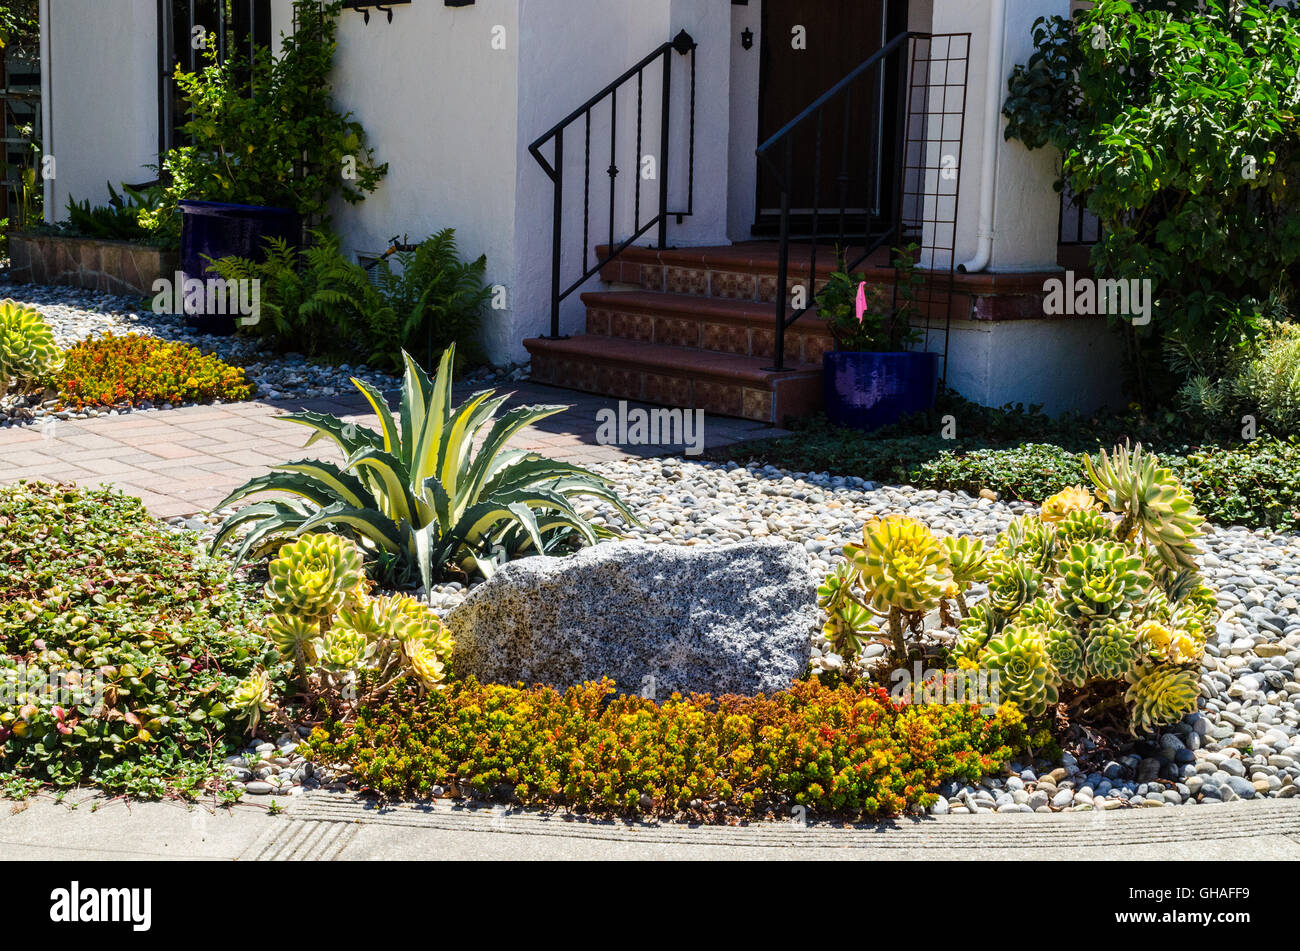 Colorful Water Friendly Drought Tolerant Plants In California   Stock Image